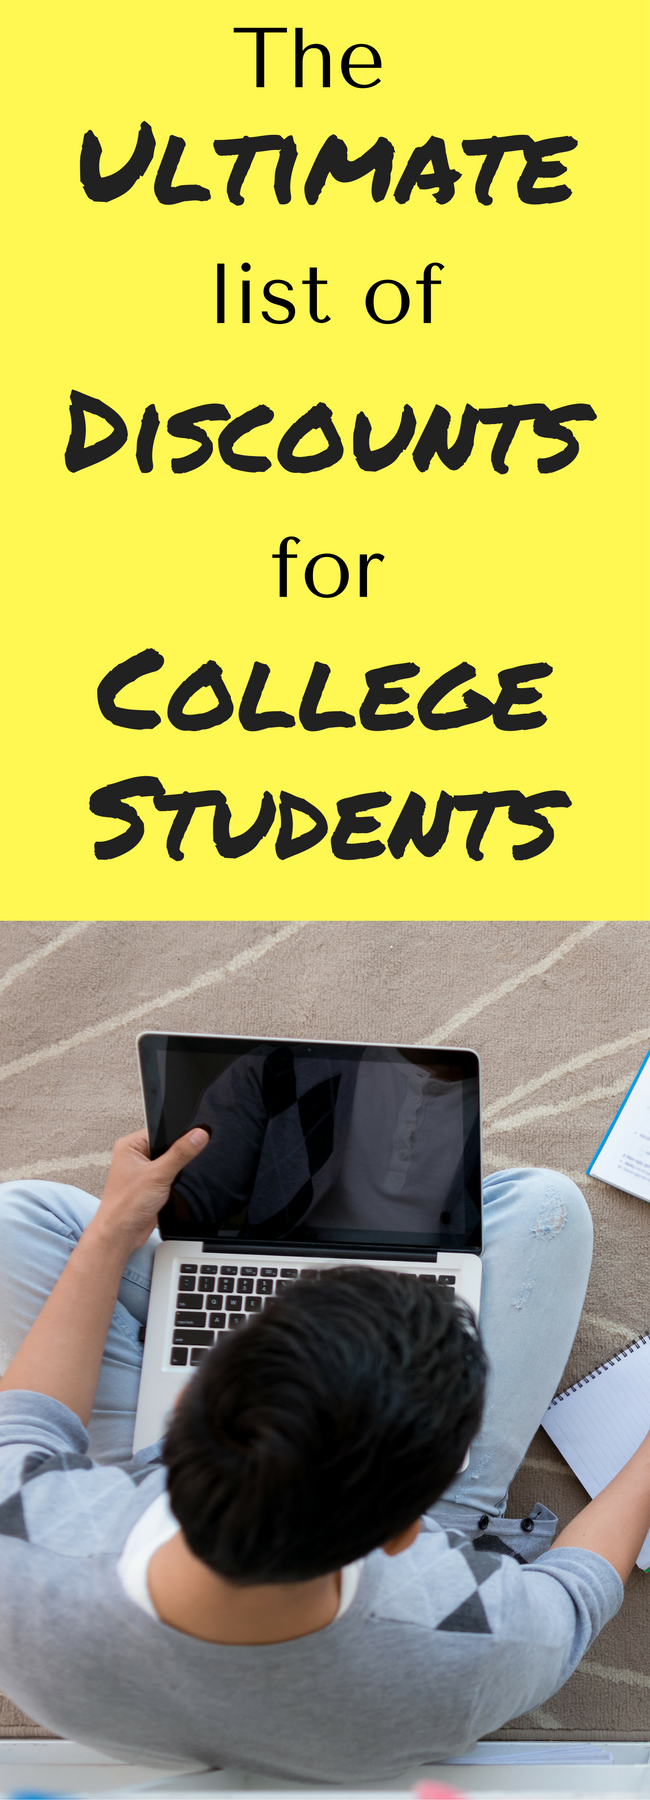 The best college student discounts 2018 the ultimate list of discounts for college students college student discounts college students fandeluxe Images